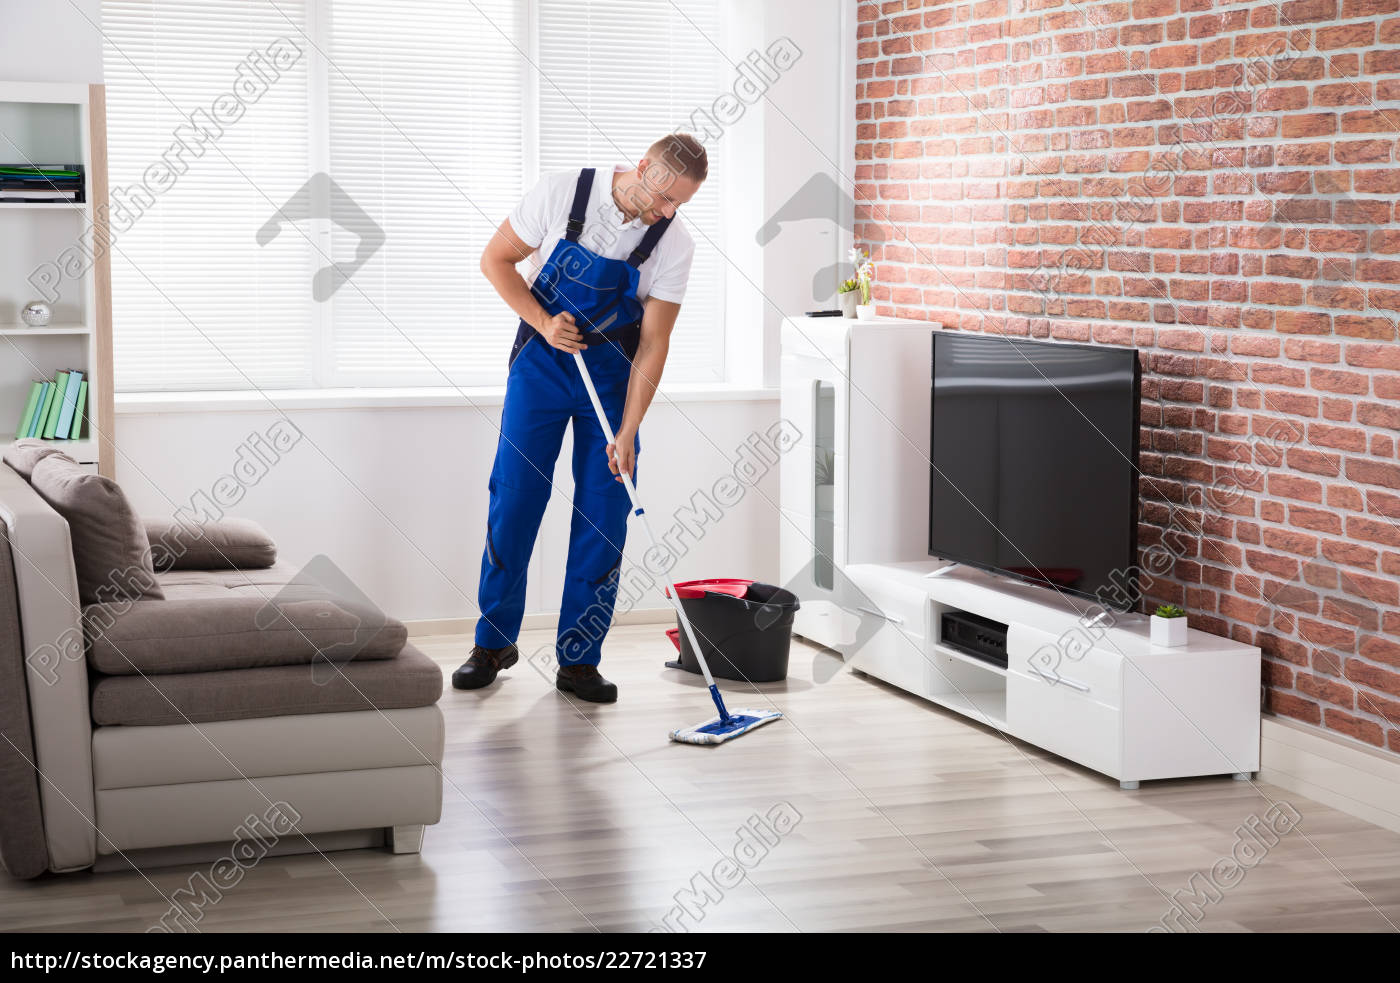 male, janitor, sweeping, floor, at, home - 22721337